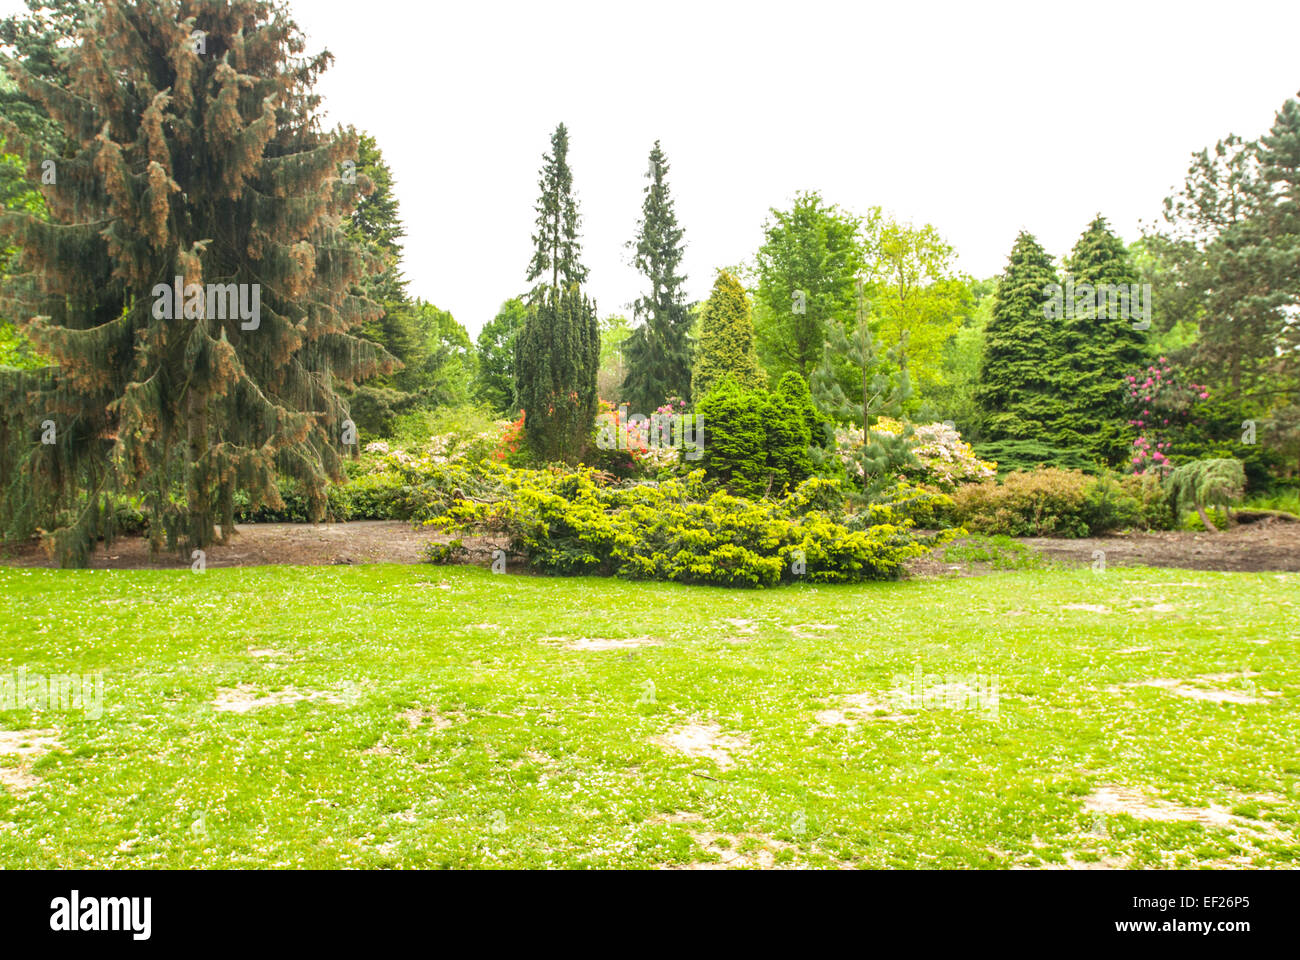 Park scene with lawn trees and bushes - Stock Image